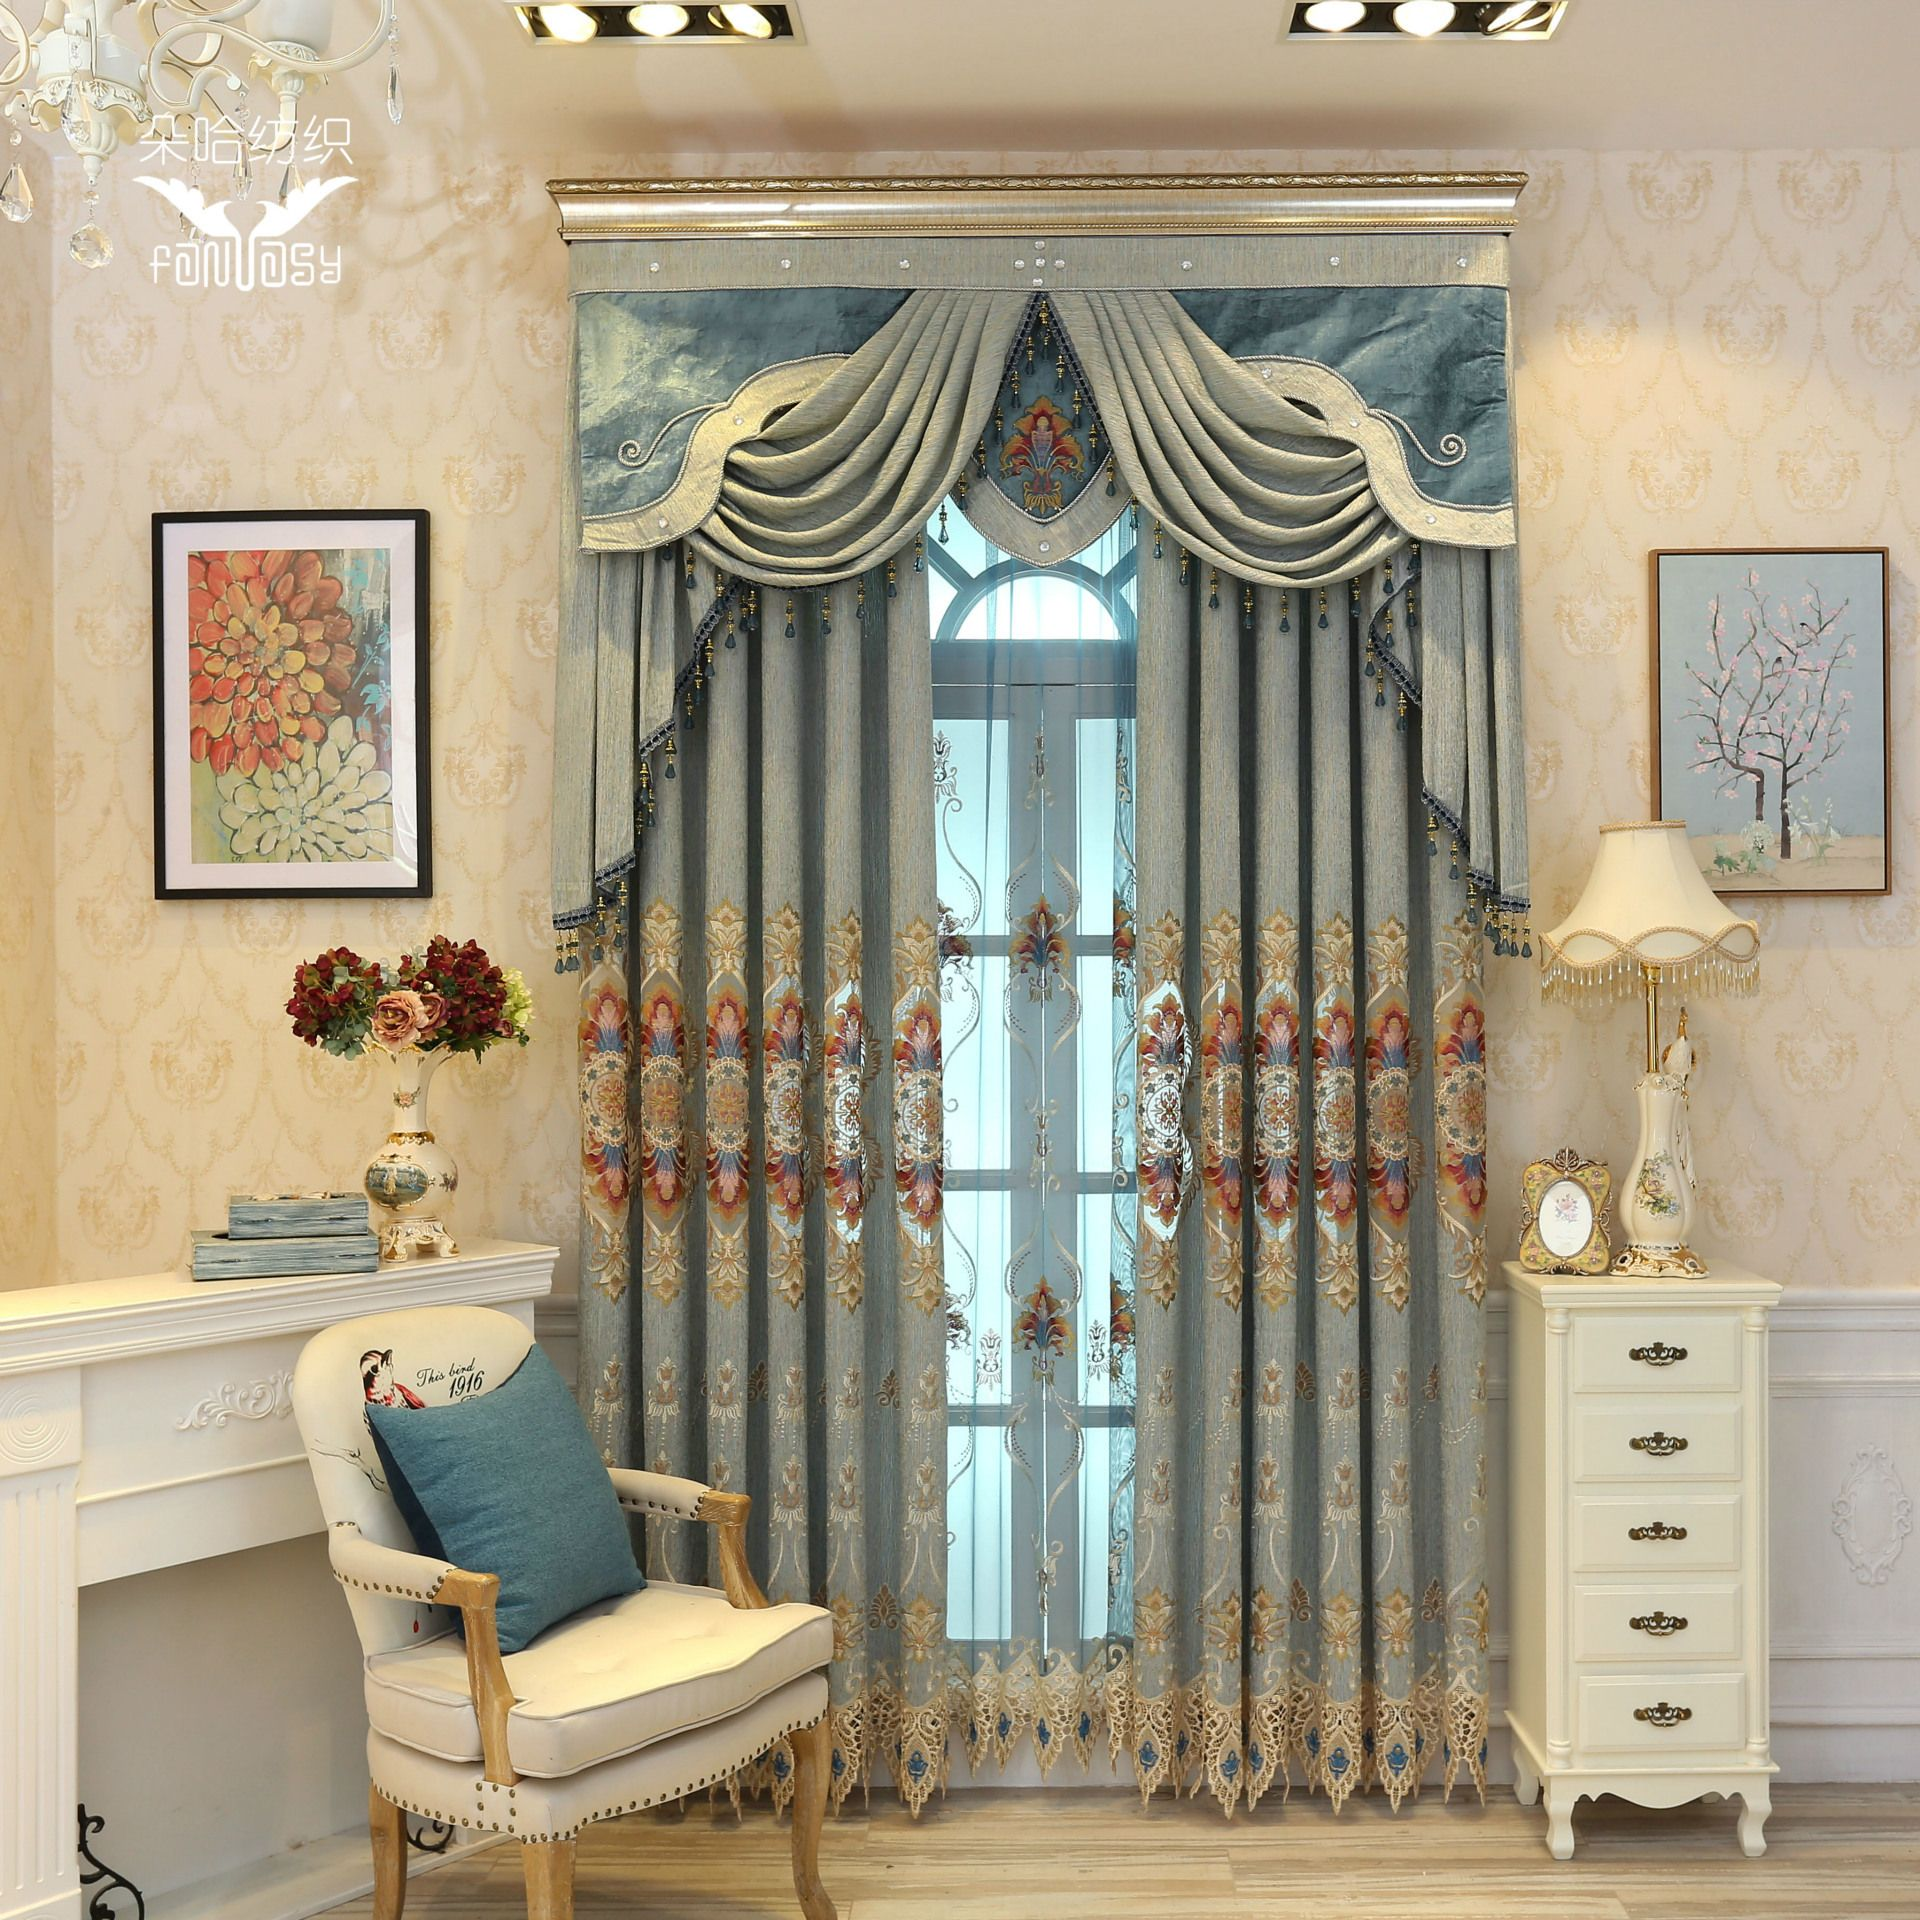 New upmarket european style embroidered chenille blackout curtains